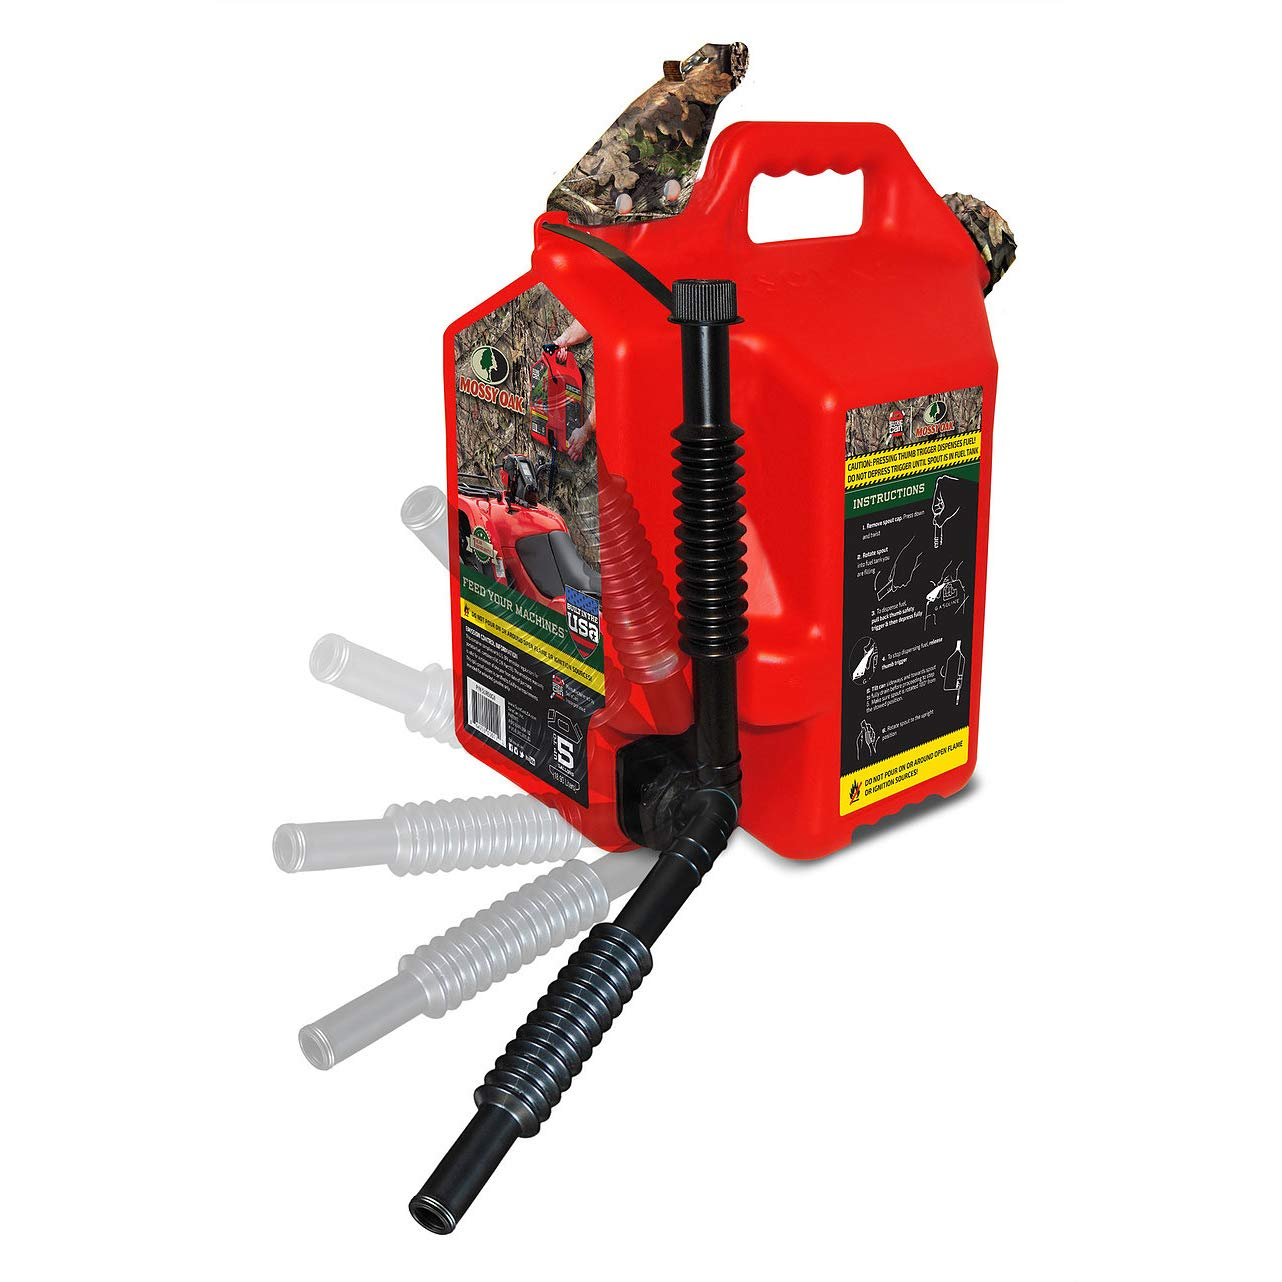 Surecan Flex 5 Gallon Total Flow Control Mossy Oak Hunting Fuel Container, Red by Surecan (Image #2)